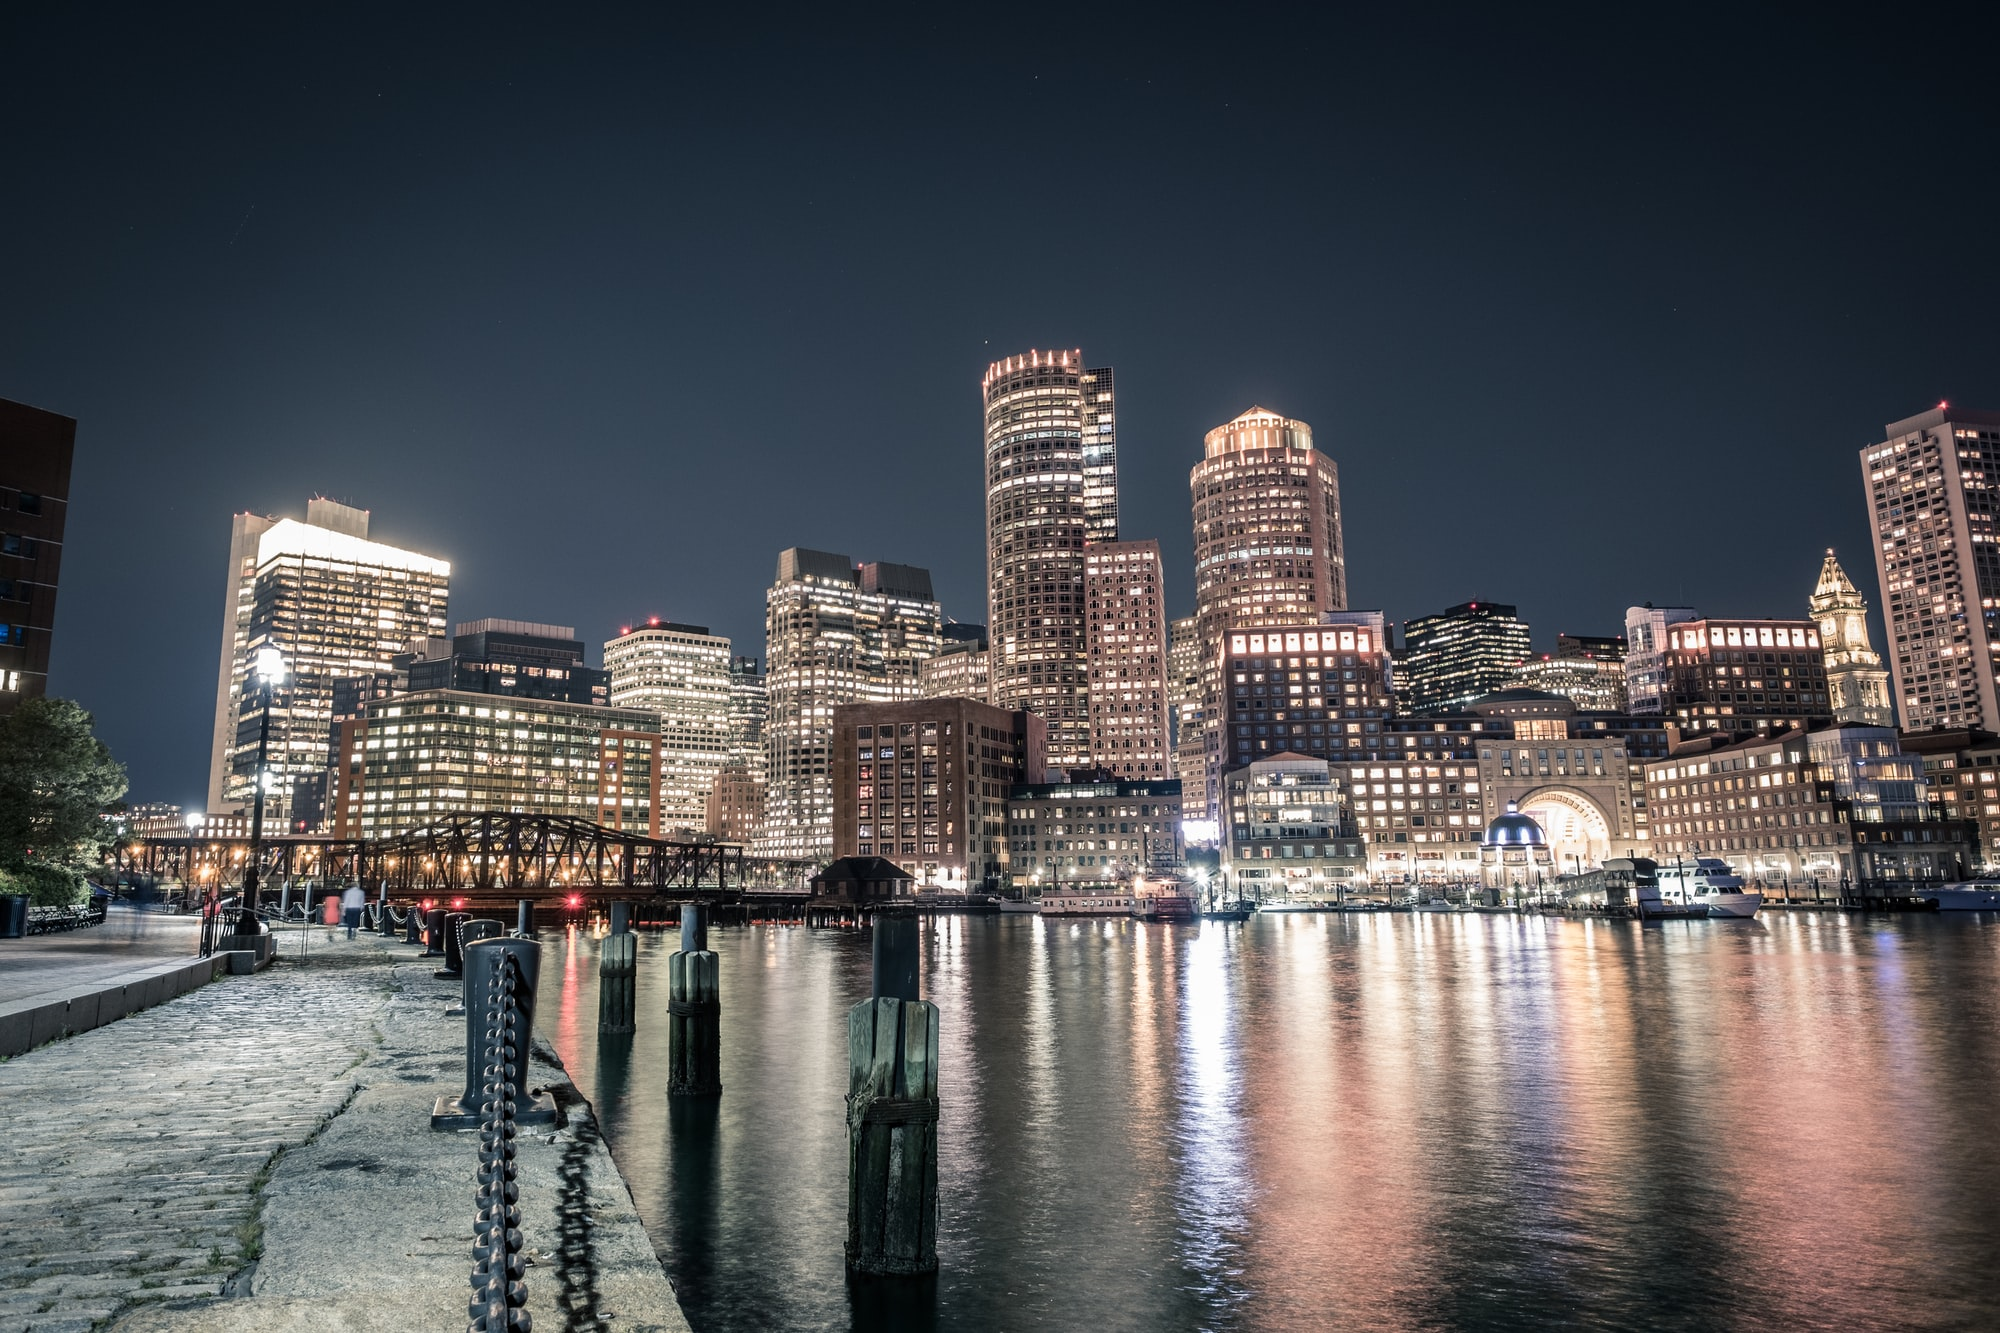 3 Day Trip to Boston - First time